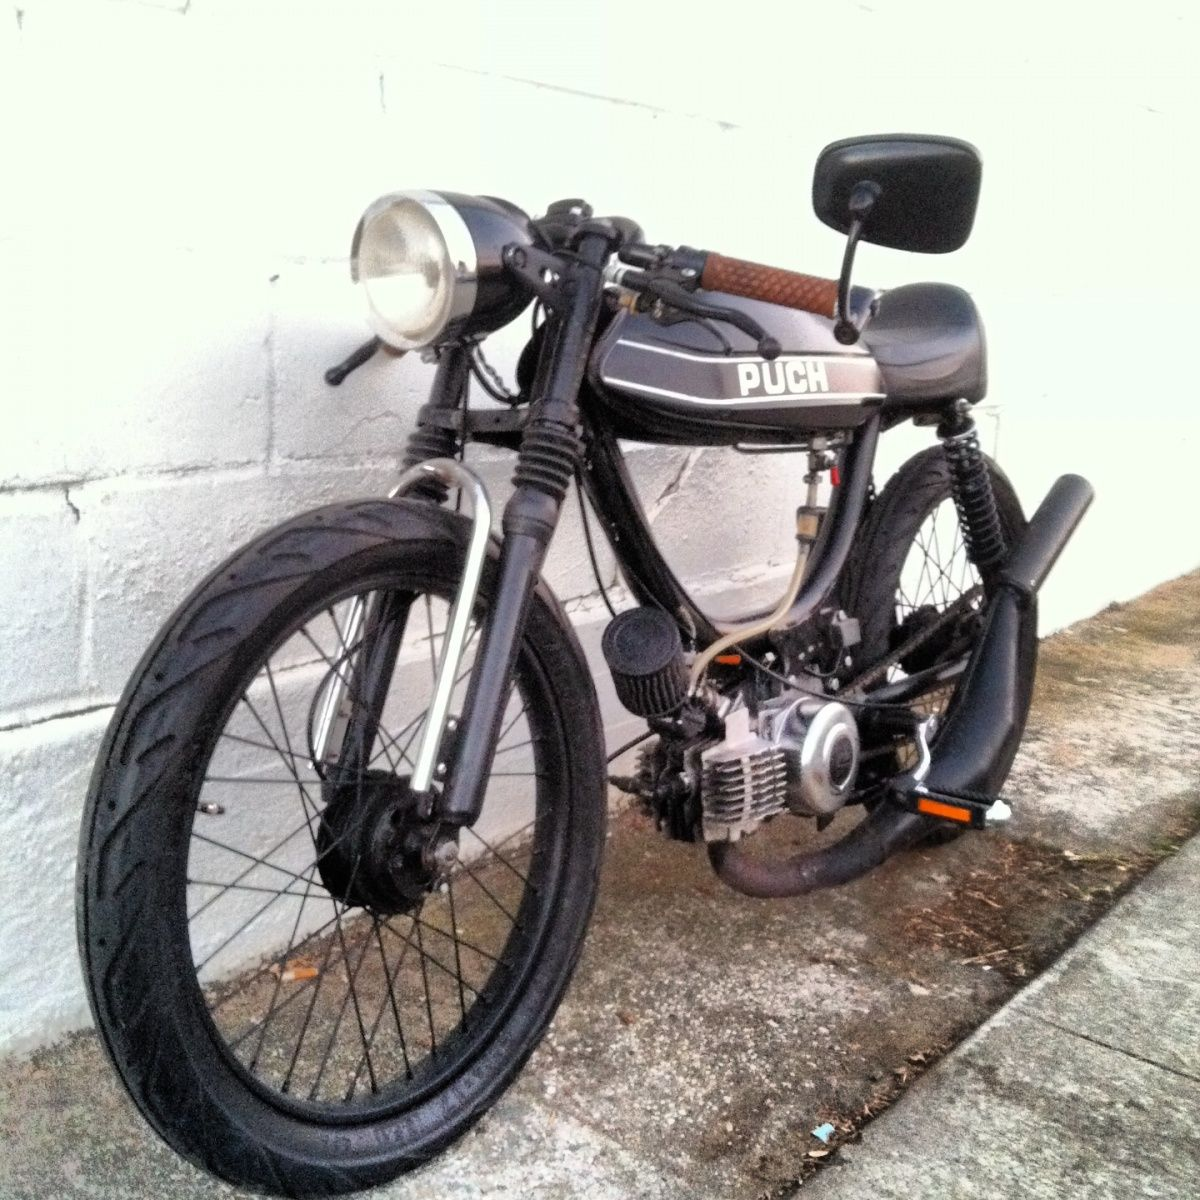 puch cafe racer style moped conversion moped bilar. Black Bedroom Furniture Sets. Home Design Ideas